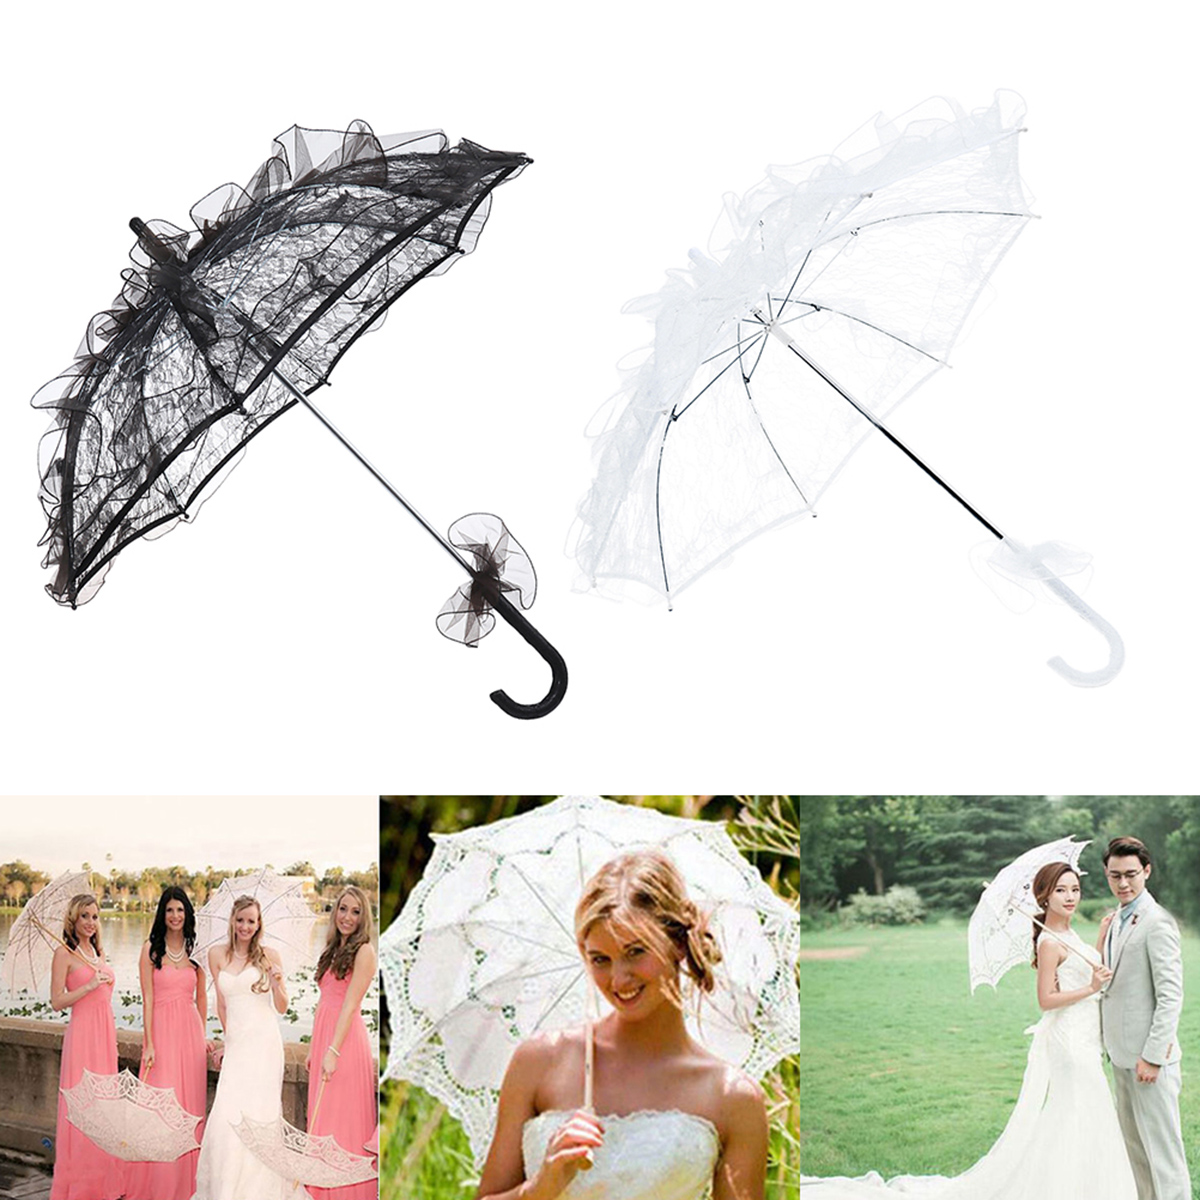 Western Style Bride Umbrella Lace Sun Umbrella Fleur Parasol Decoration White Red Wedding Bride Umbrella For Bridal Wedding